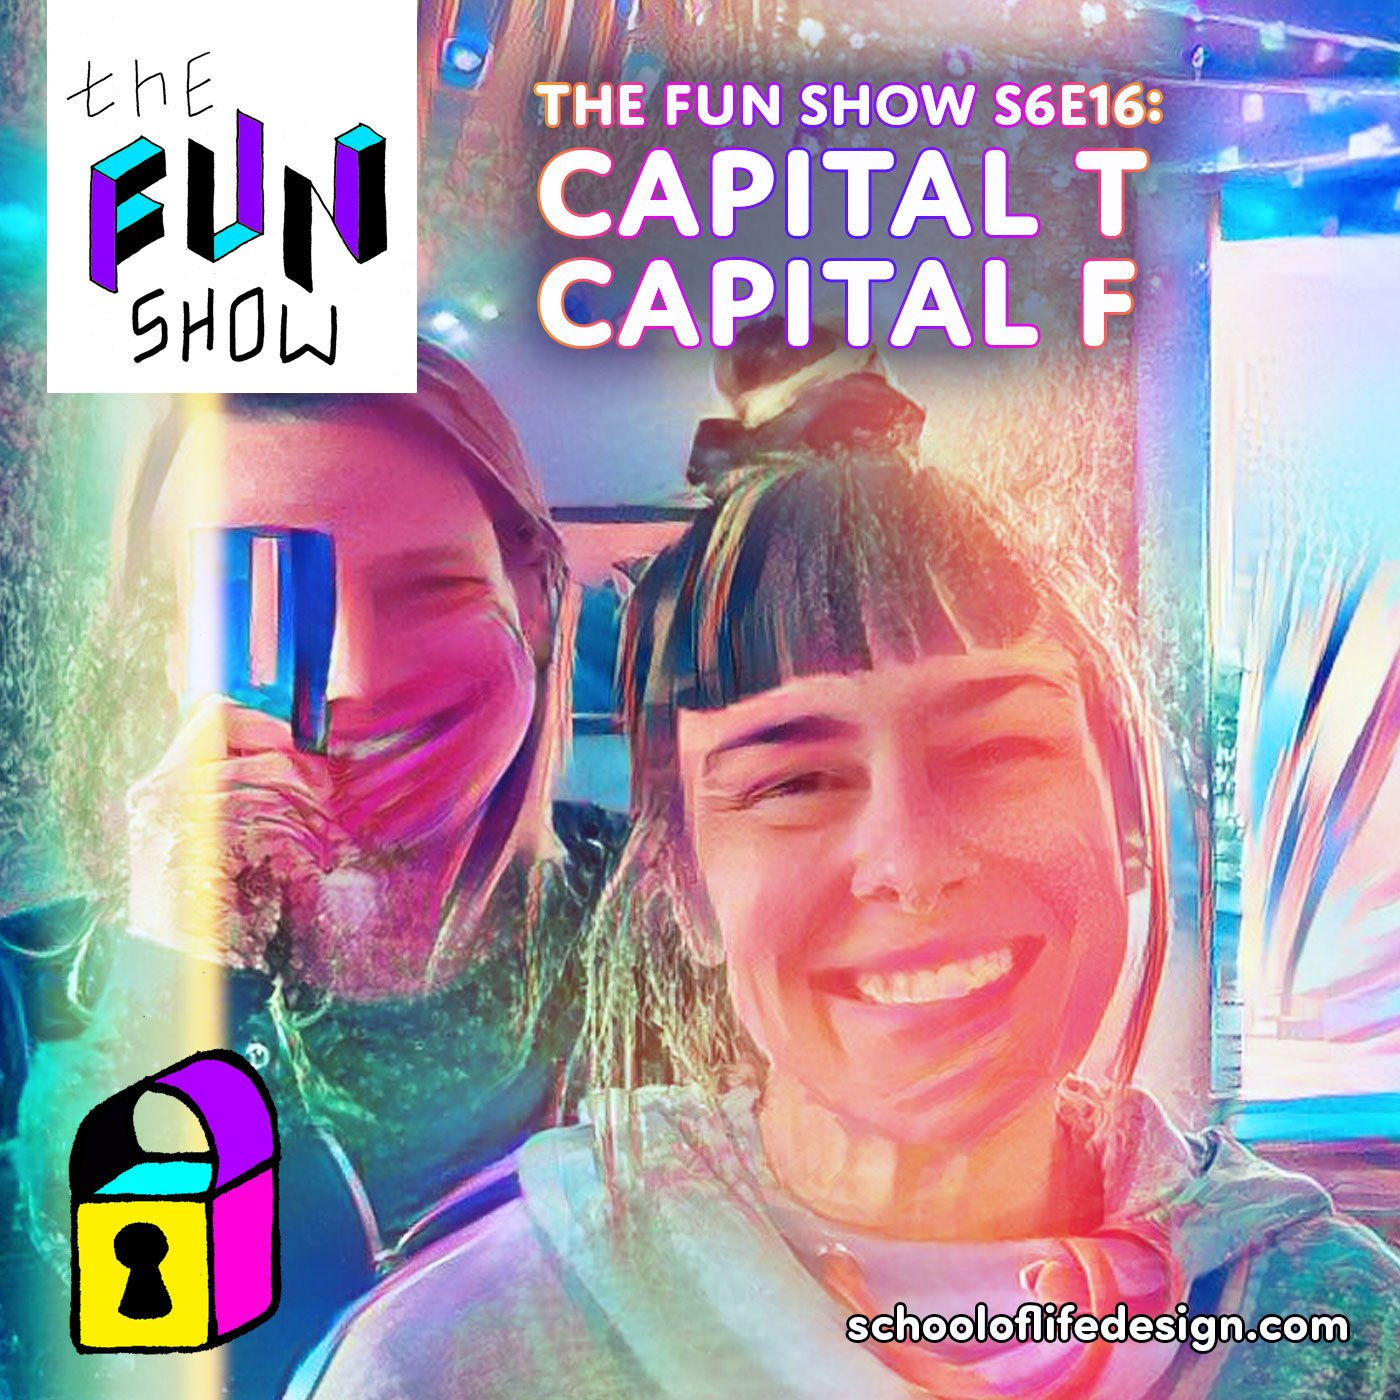 The Fun Show S6E16: Capital T Capital F